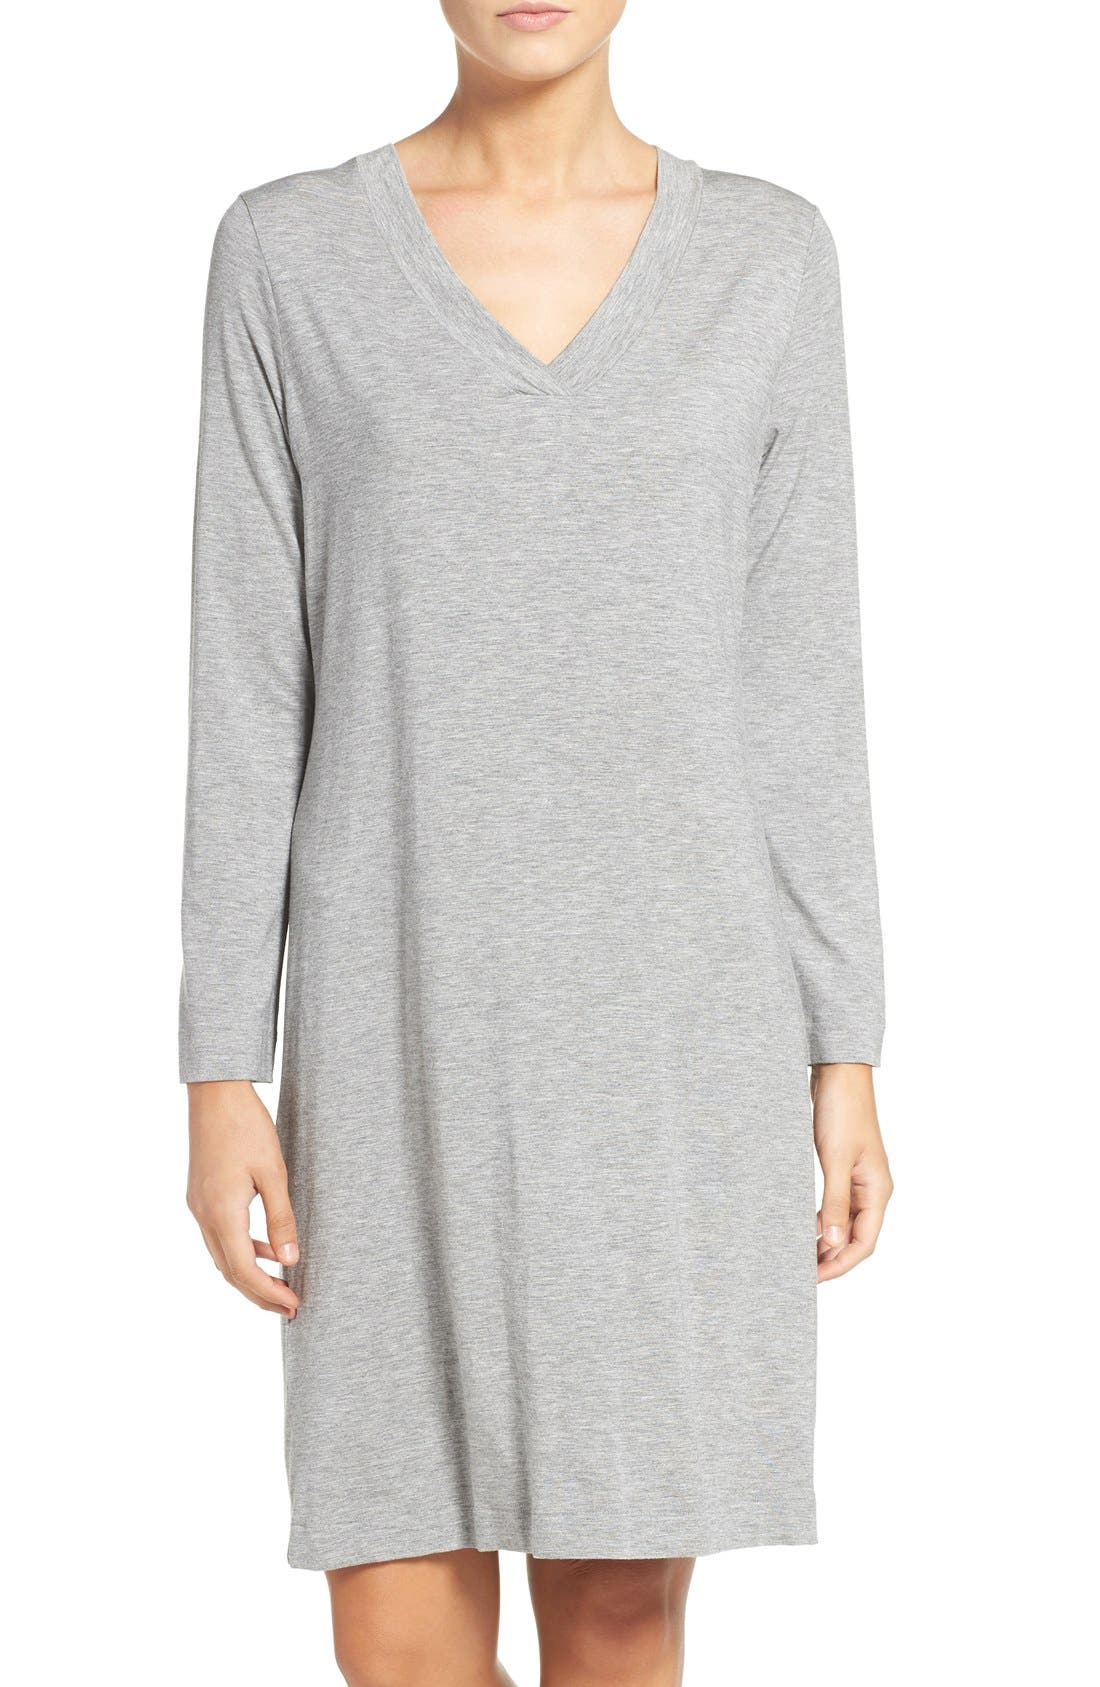 Long Sleeve Knit Nightgown,                         Main,                         color, 025